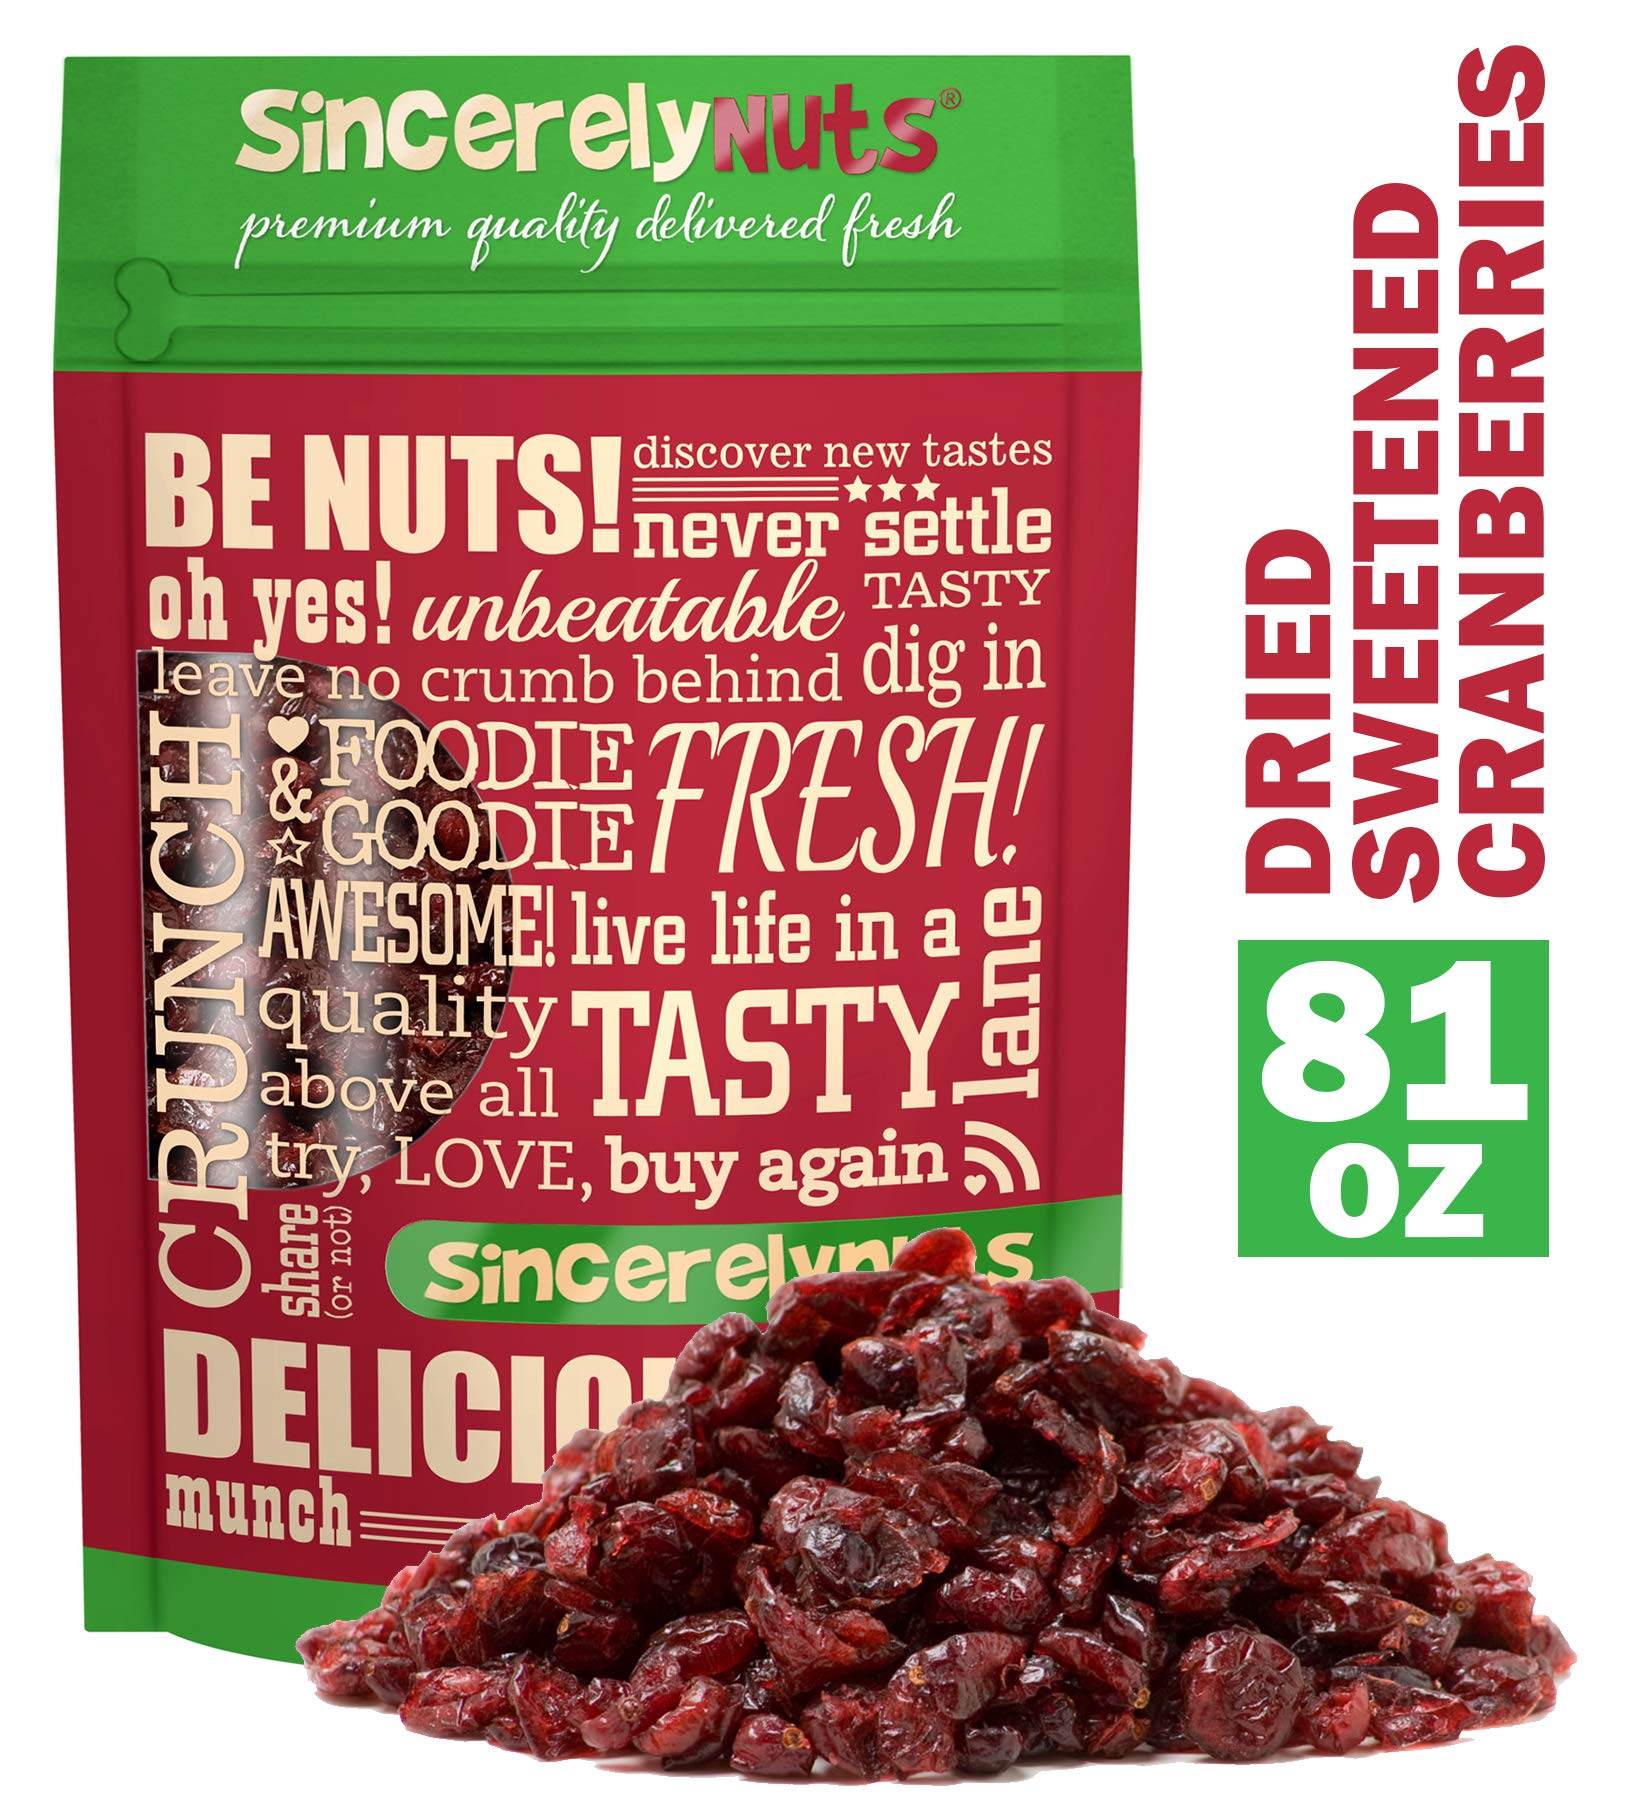 Sincerely Nuts Dried Sweetened Cranberries (5 LB) Vegan, Kosher & Gluten-Free Food-Dried Fruit Snack-Healthy Addition to Your Favorite Meals-Nutrient Rich Alternative Treat for the Whole Family by Sincerely Nuts (Image #1)